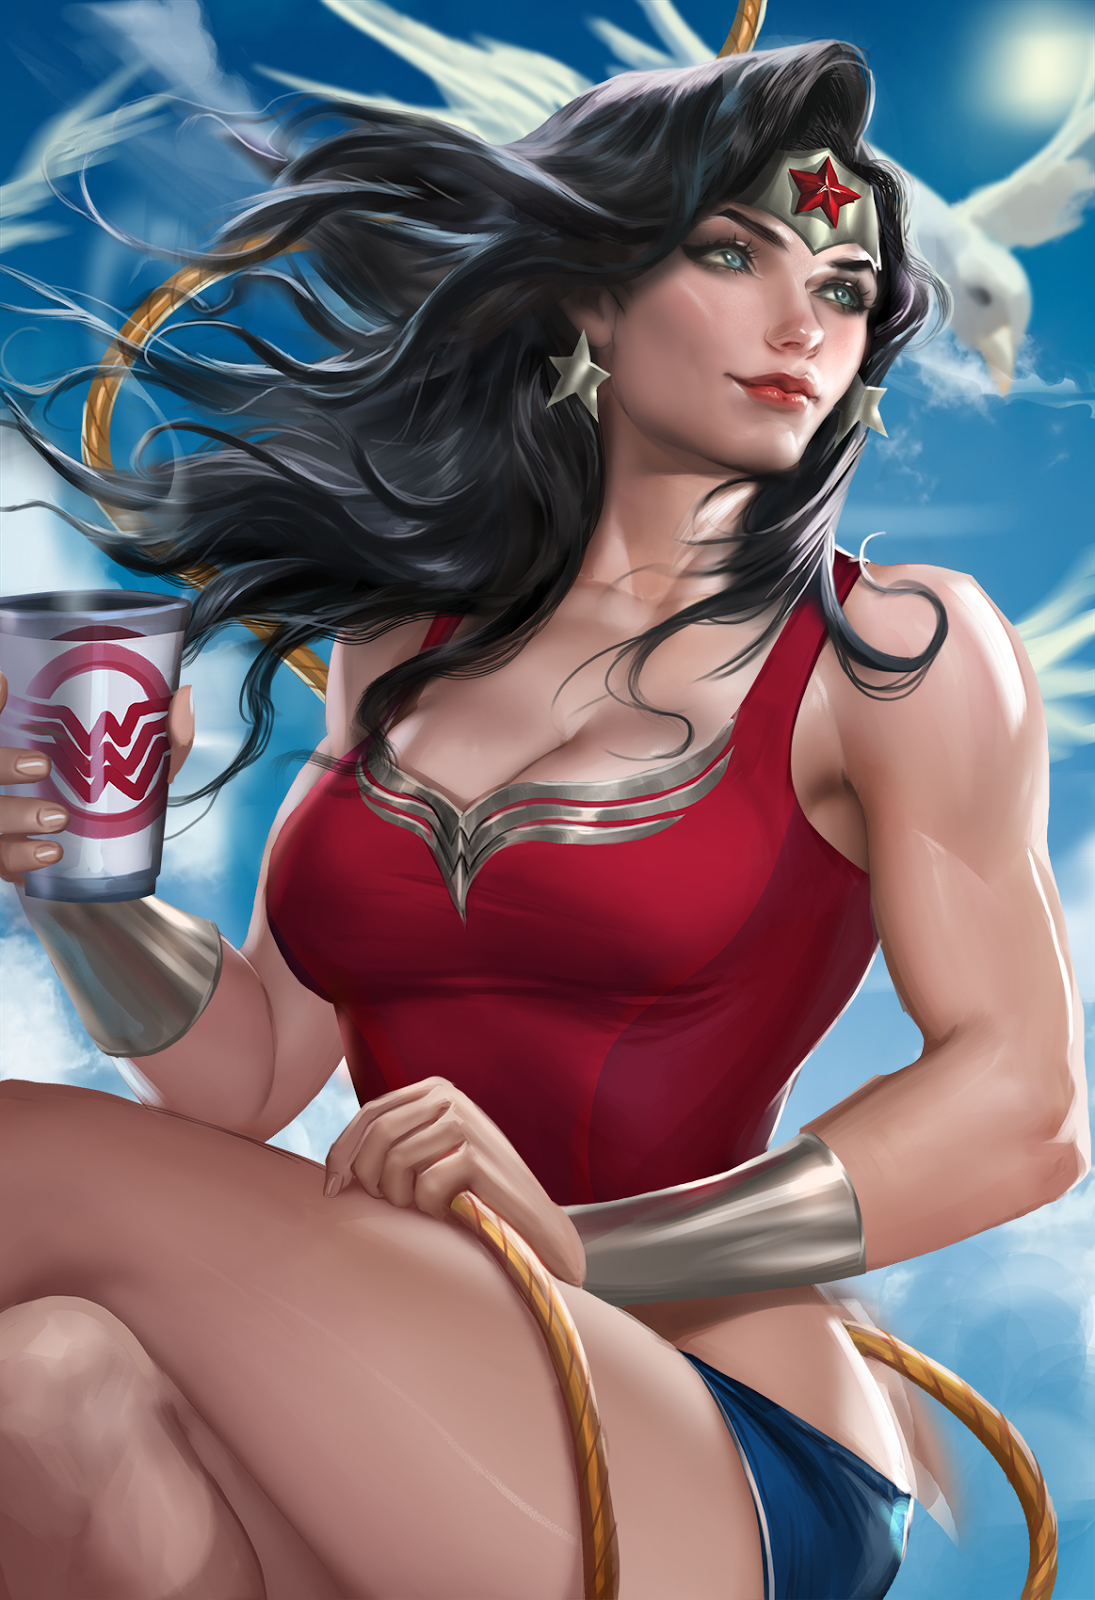 Female Superhero Hentai with pictures of the day [*-^] anime kawaii, ecchi girl, the best